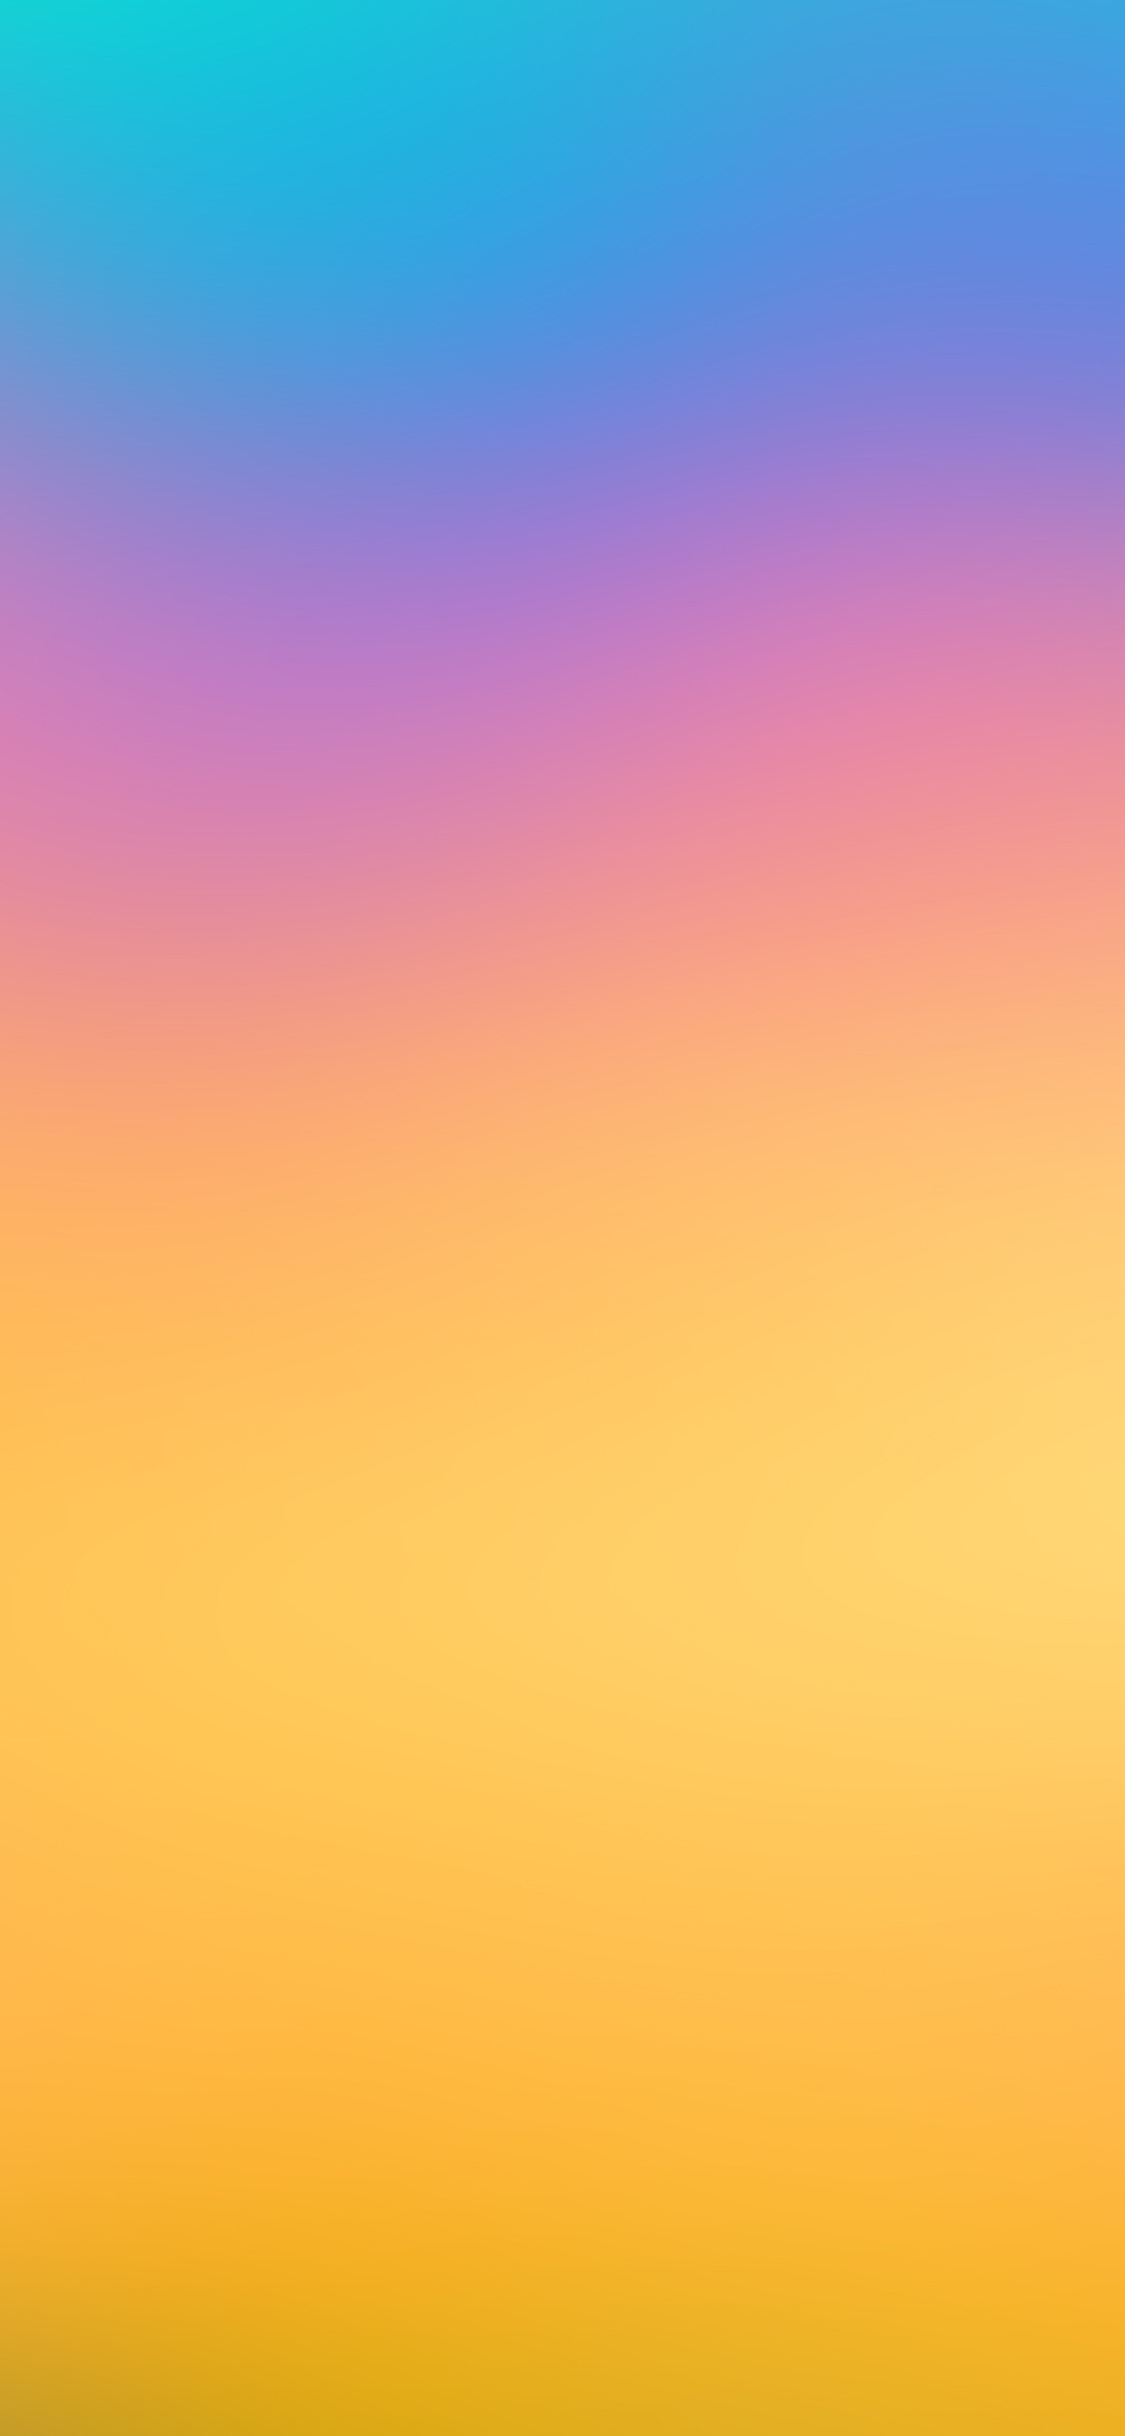 iPhoneXpapers.com-Apple-iPhone-wallpaper-sk32-bright-yellow-blue-sunny-blur-gradation